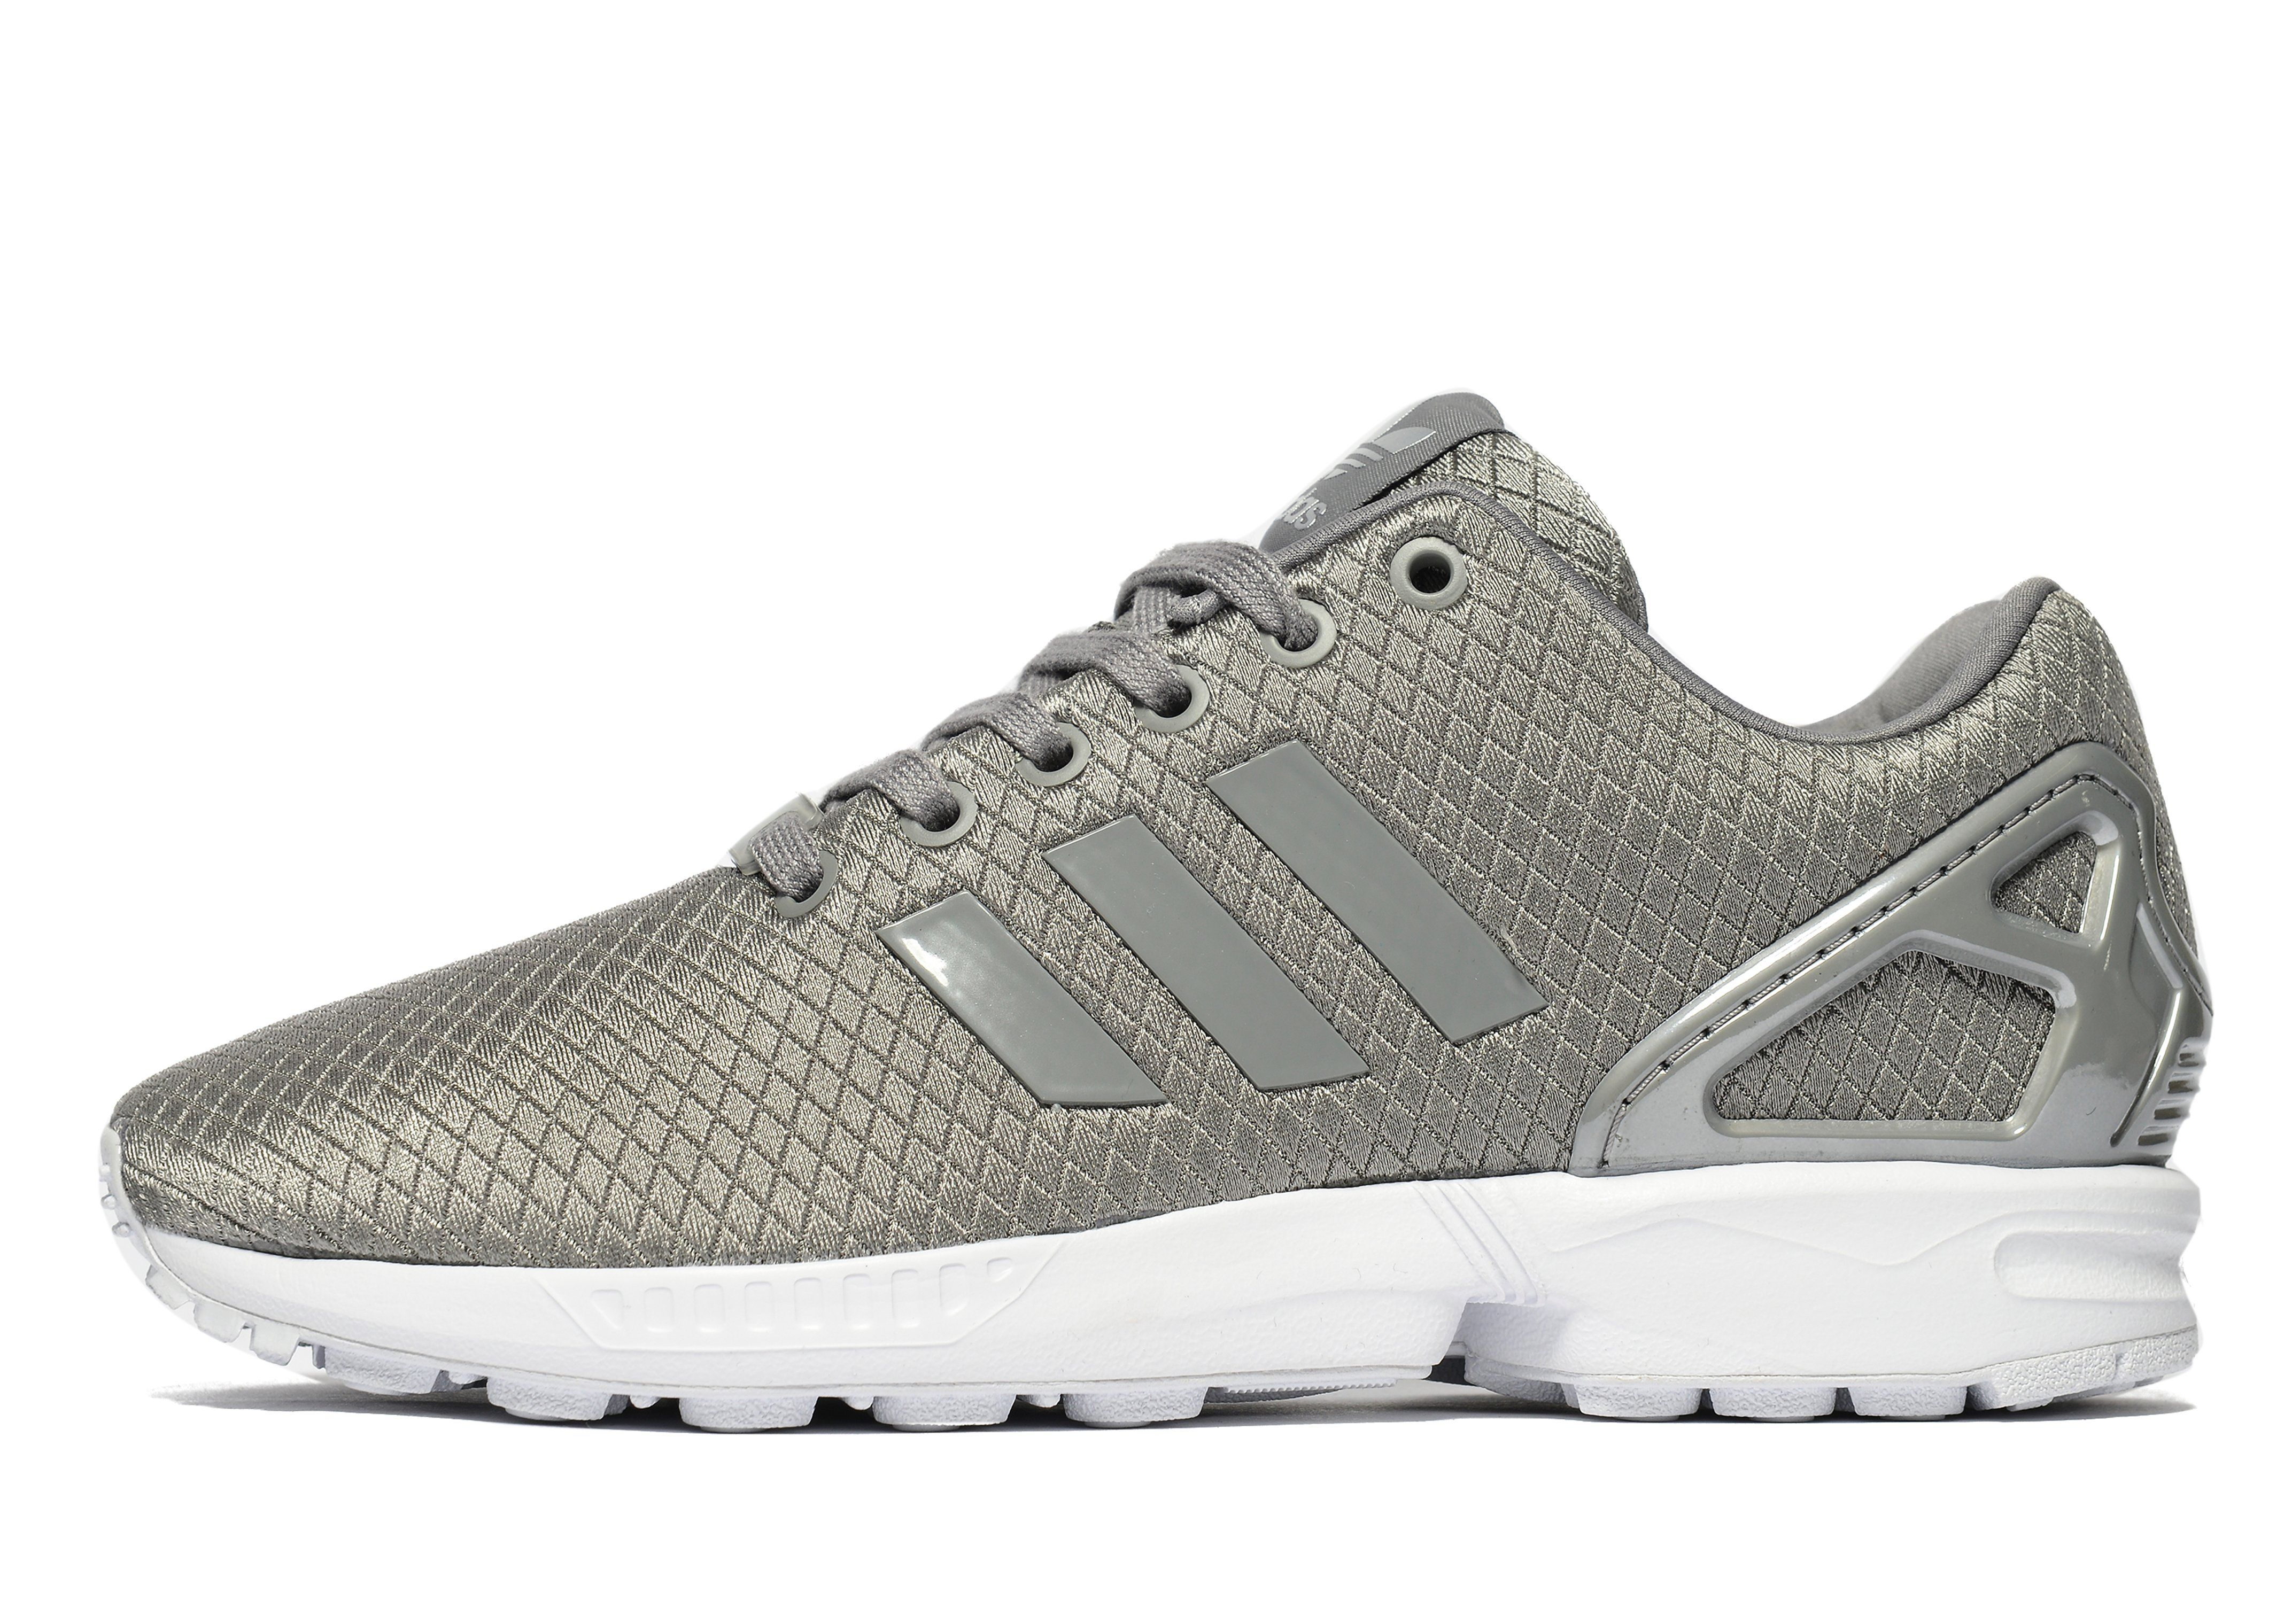 adidas ZX Flux Winter Core Black/ Dgh Solid Grey/ Ftw White Footshop